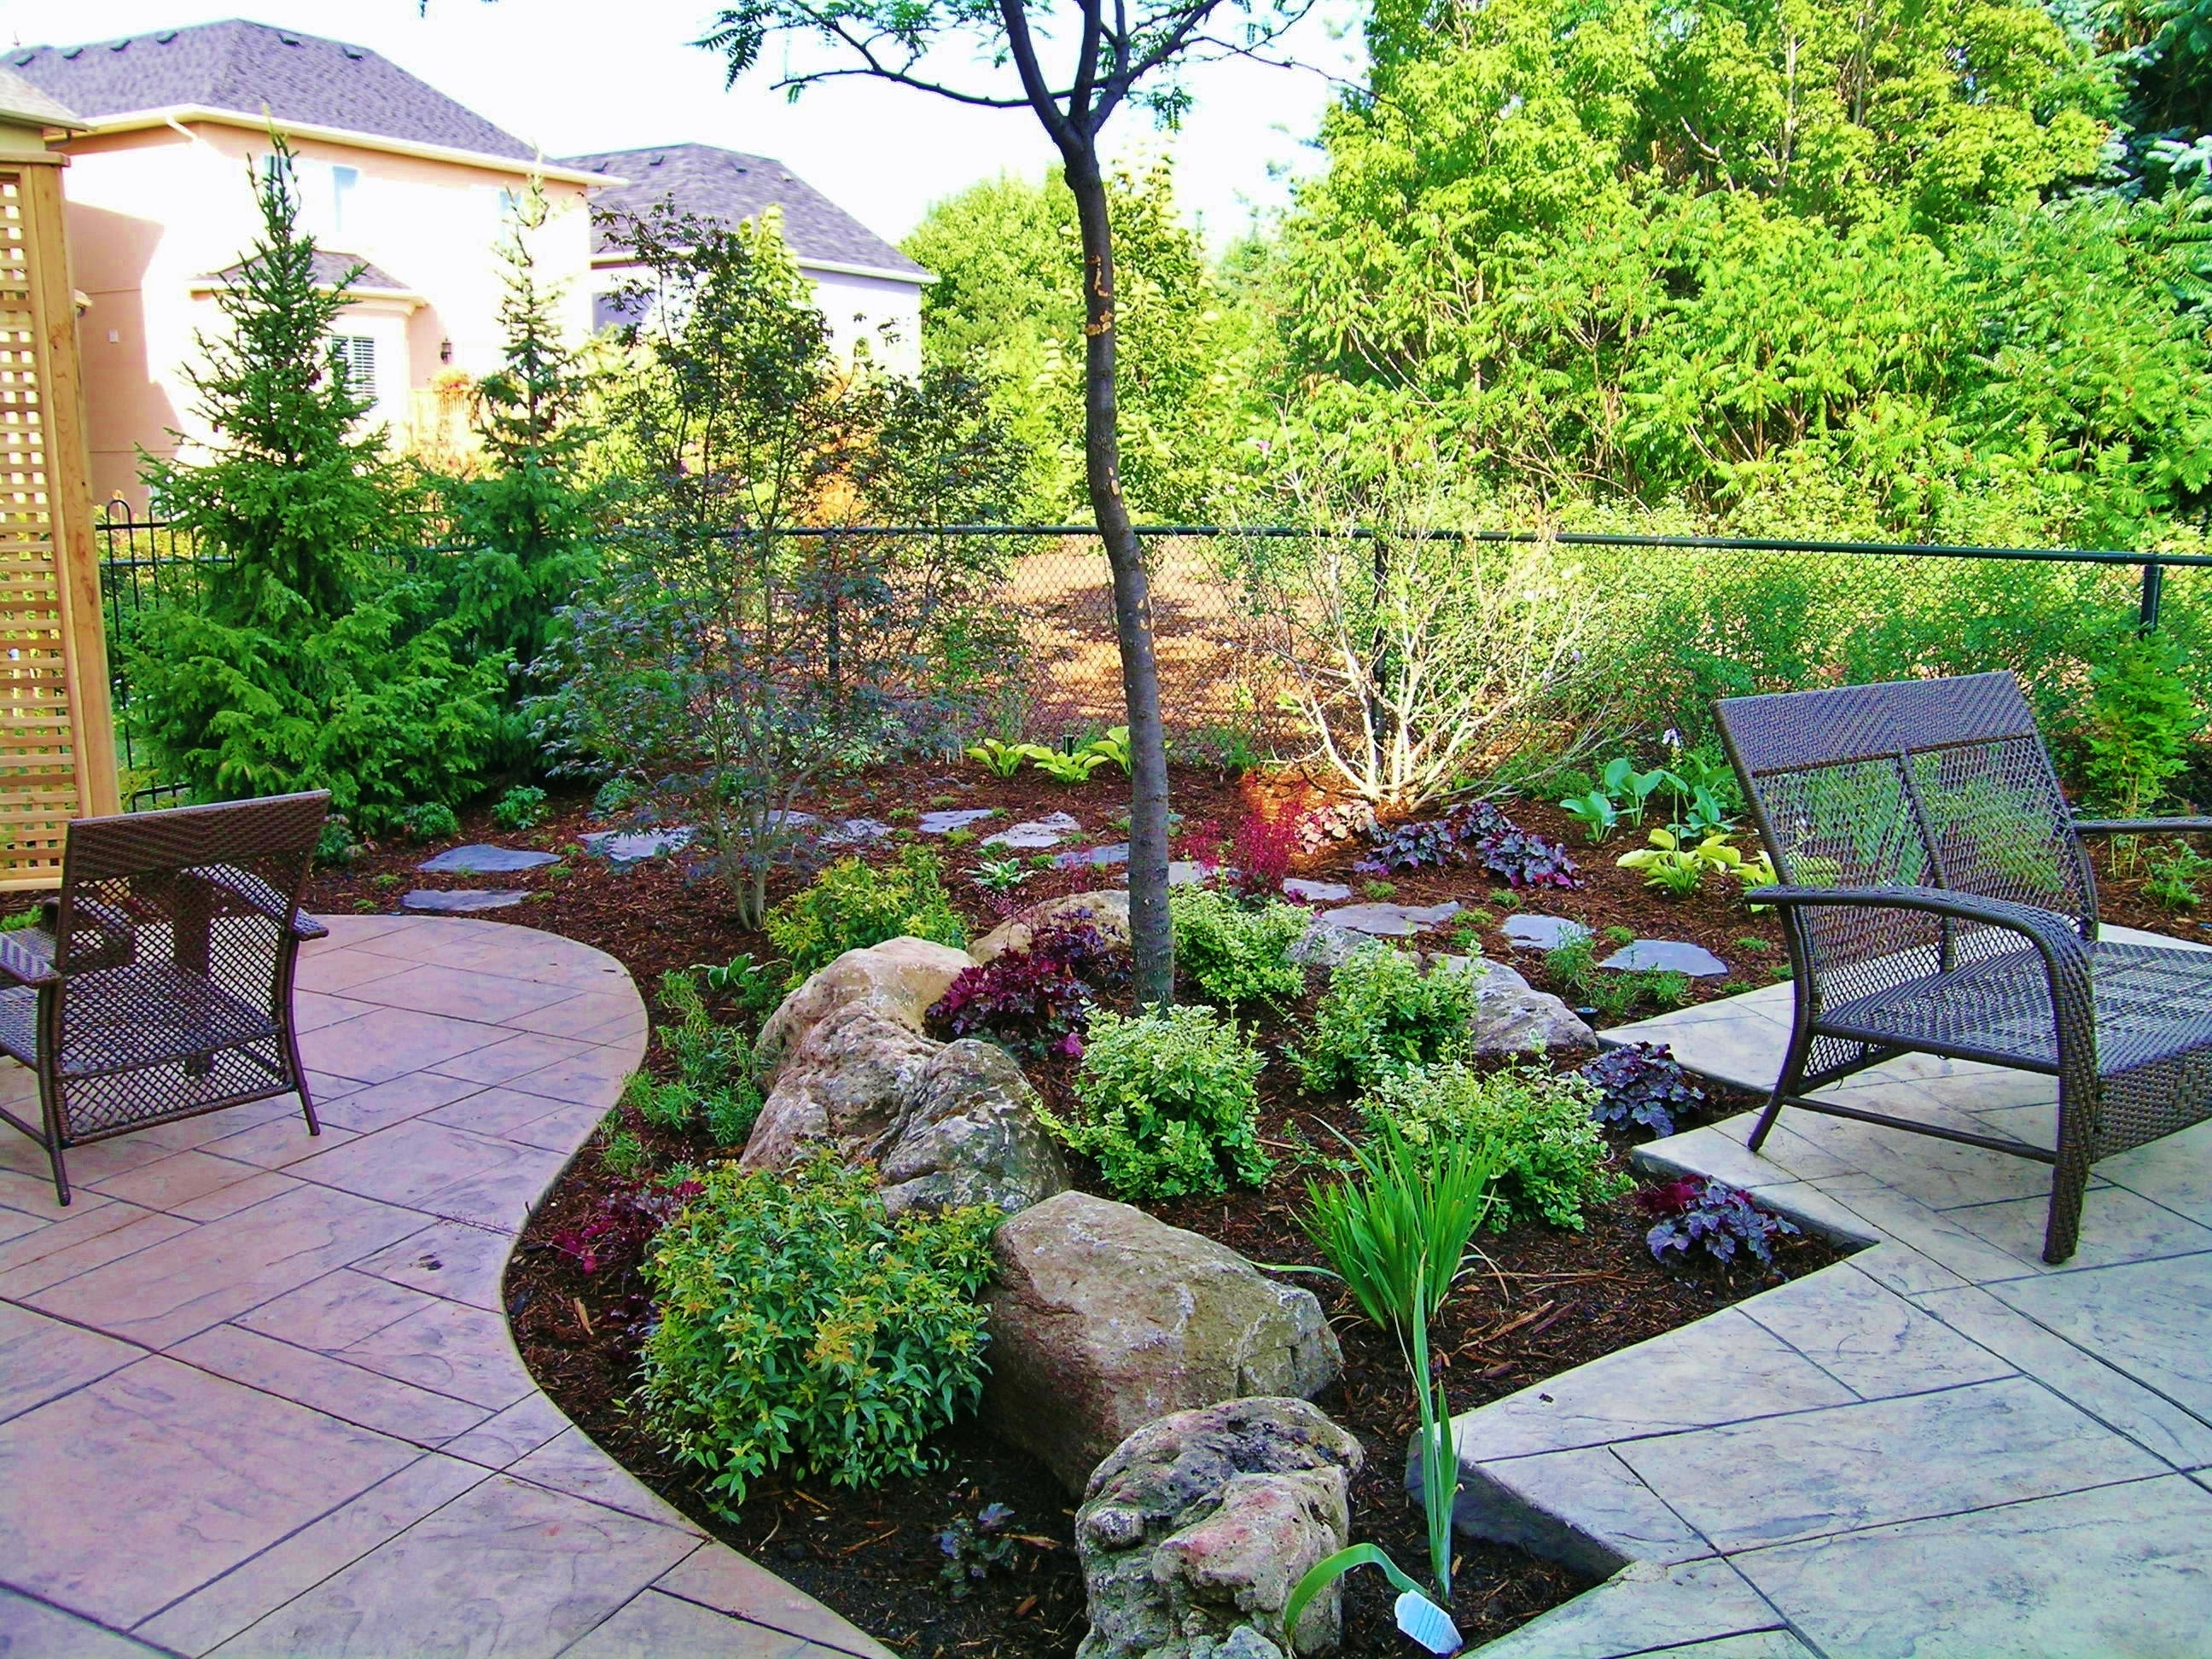 Guide And How To Do Home Landscaping Designs Samples